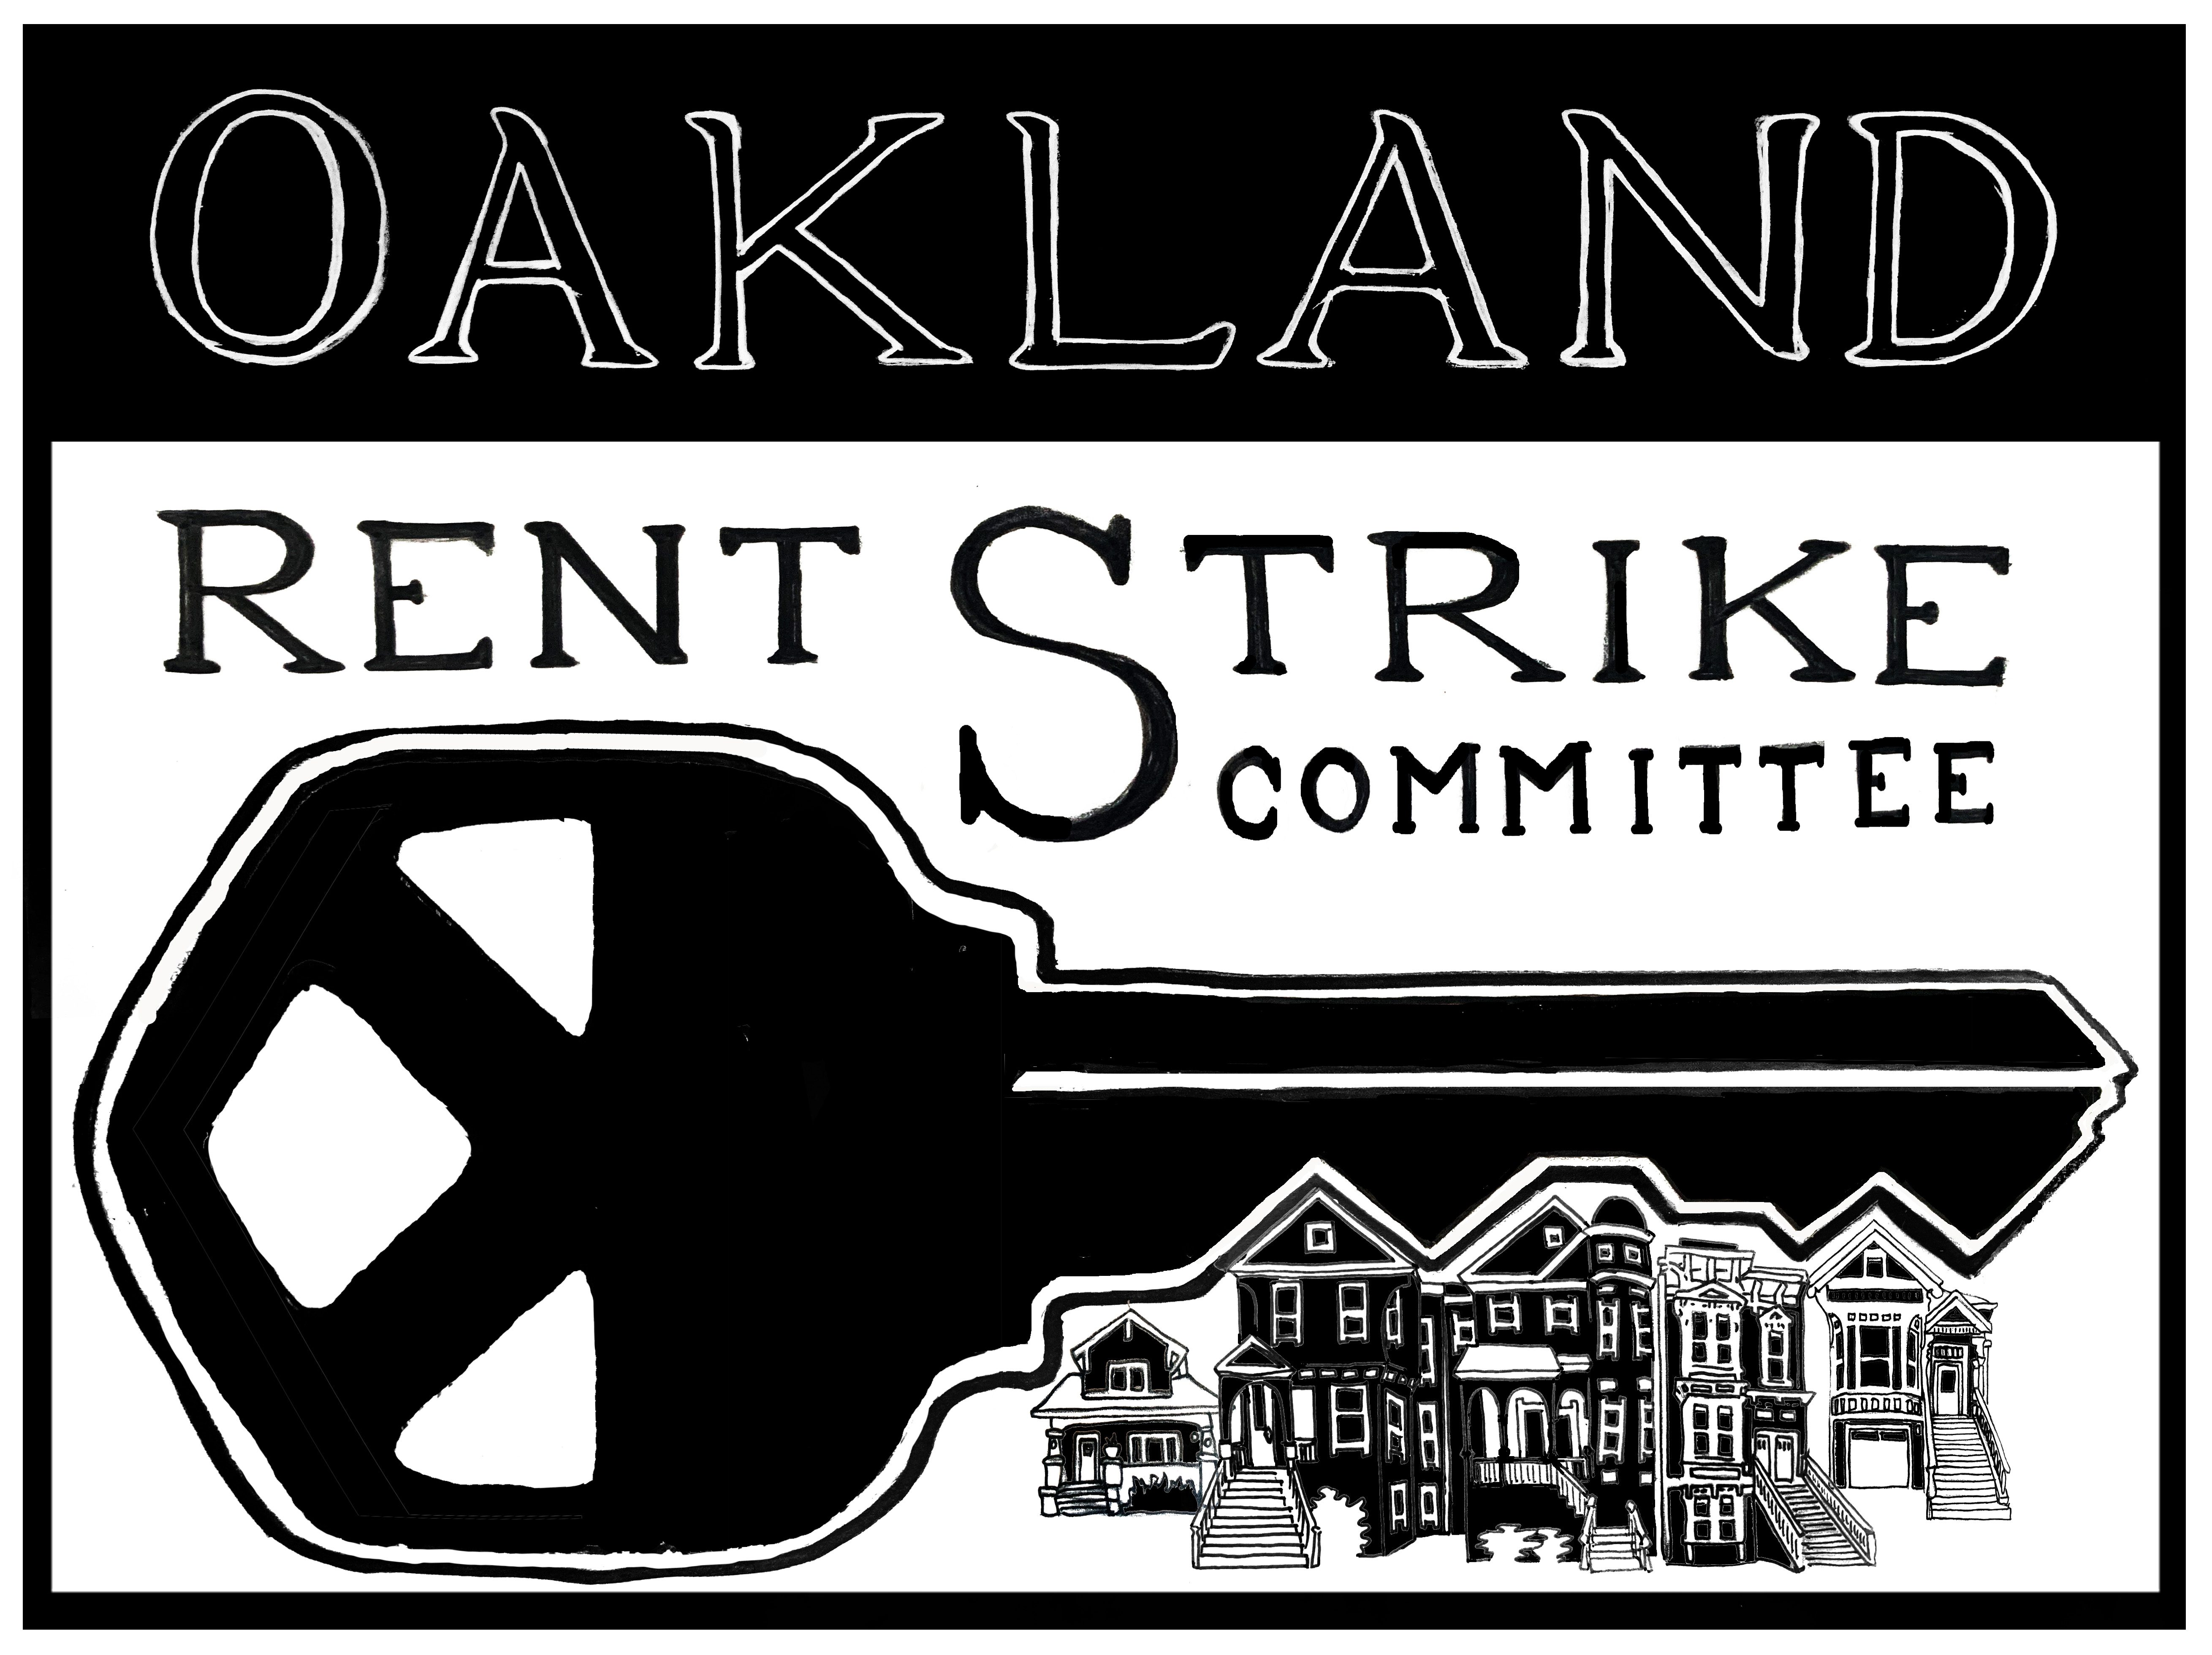 Oakland Rent Strike Committee